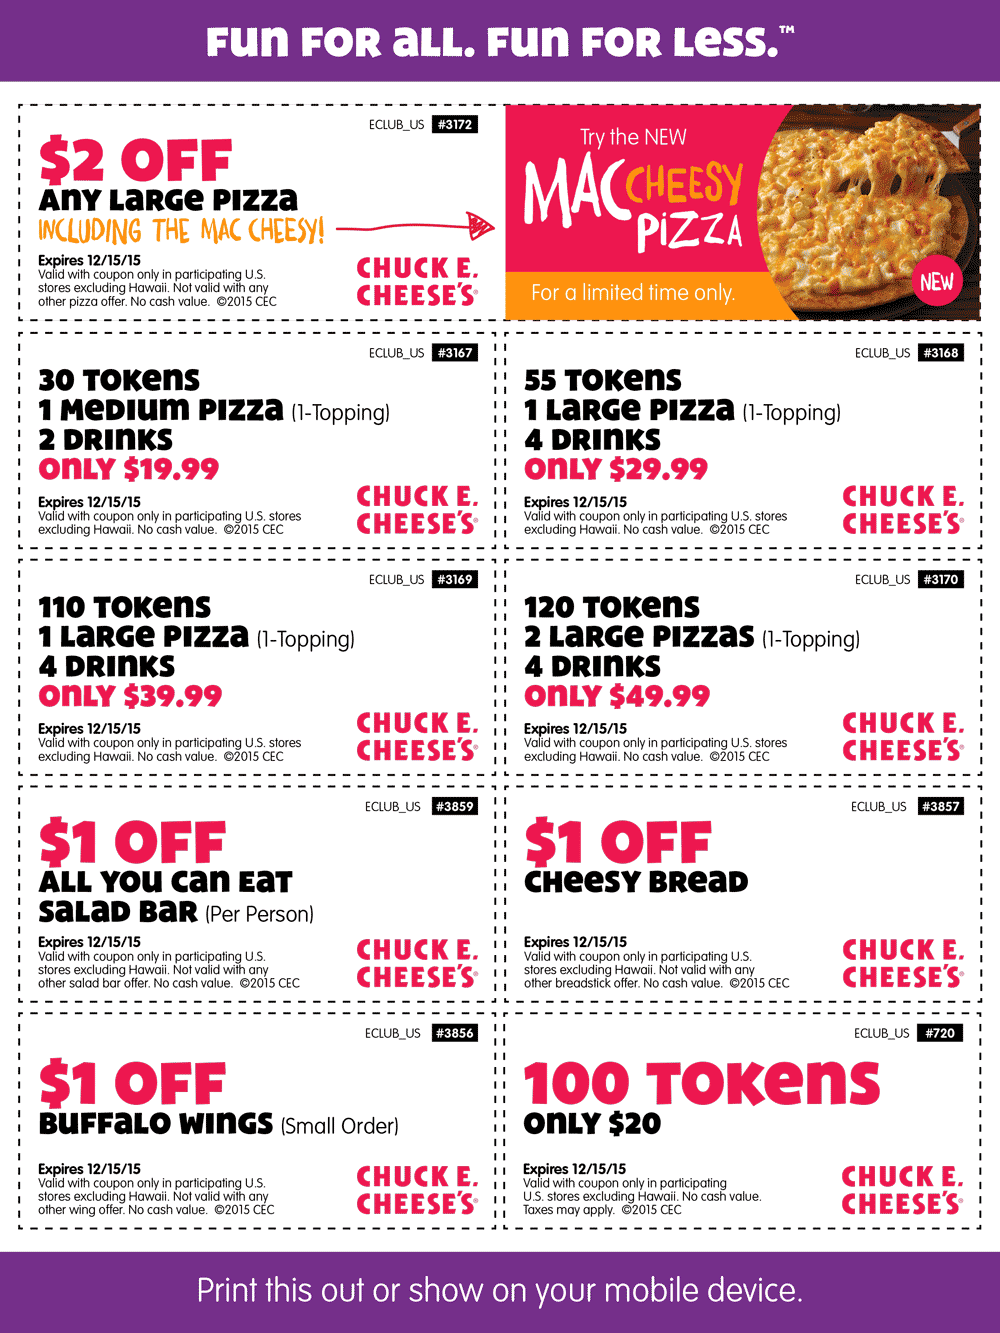 Chuck E. Cheese Coupon January 2018 30 tokens + pizza + drinks or 100 tokens for $20 & more at Chuck E. Cheese